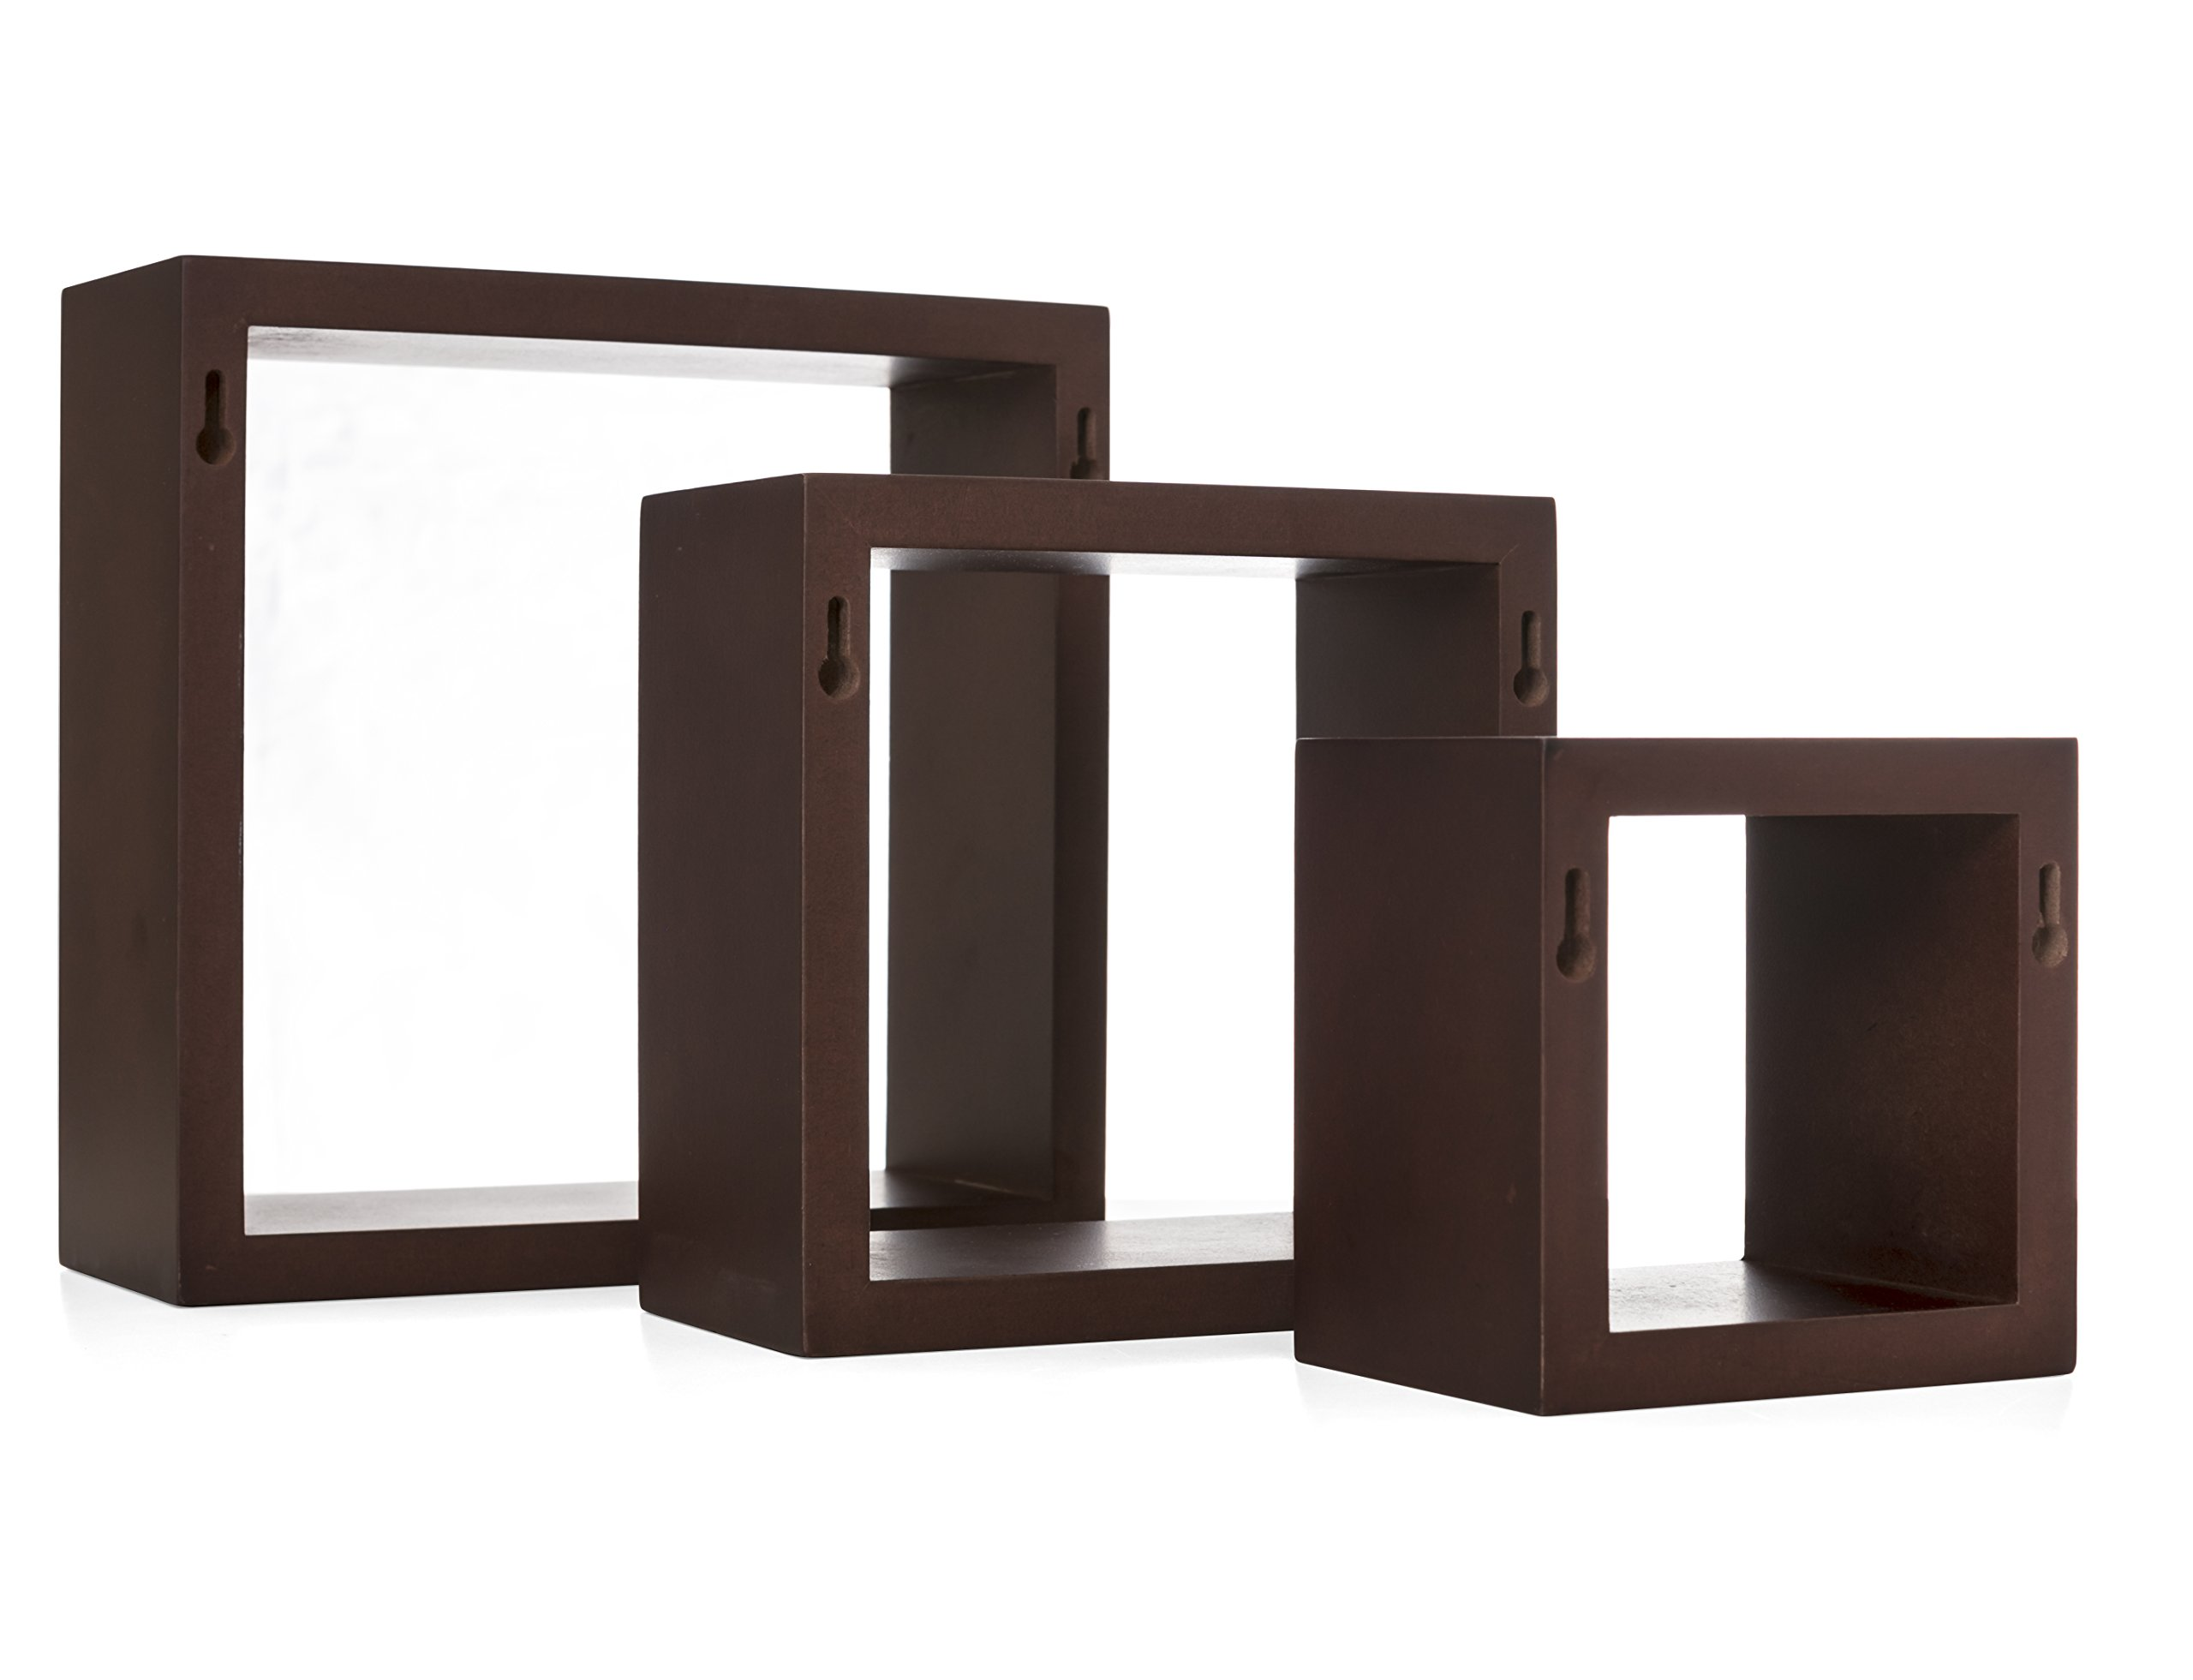 Kiera Grace Cubbi Contemporary Floating Wall Shelves, 5 by 5-Inch, 7 by 7-Inch, 9 by 9-Inch, Espresso, Set of 3 - 3-piece wall-mounted shelf set offers a clean, contemporary display style MDF construction in three sizes: small, medium, and large All cubes are 4 inches deep - wall-shelves, living-room-furniture, living-room - 71ErSW ONZL -